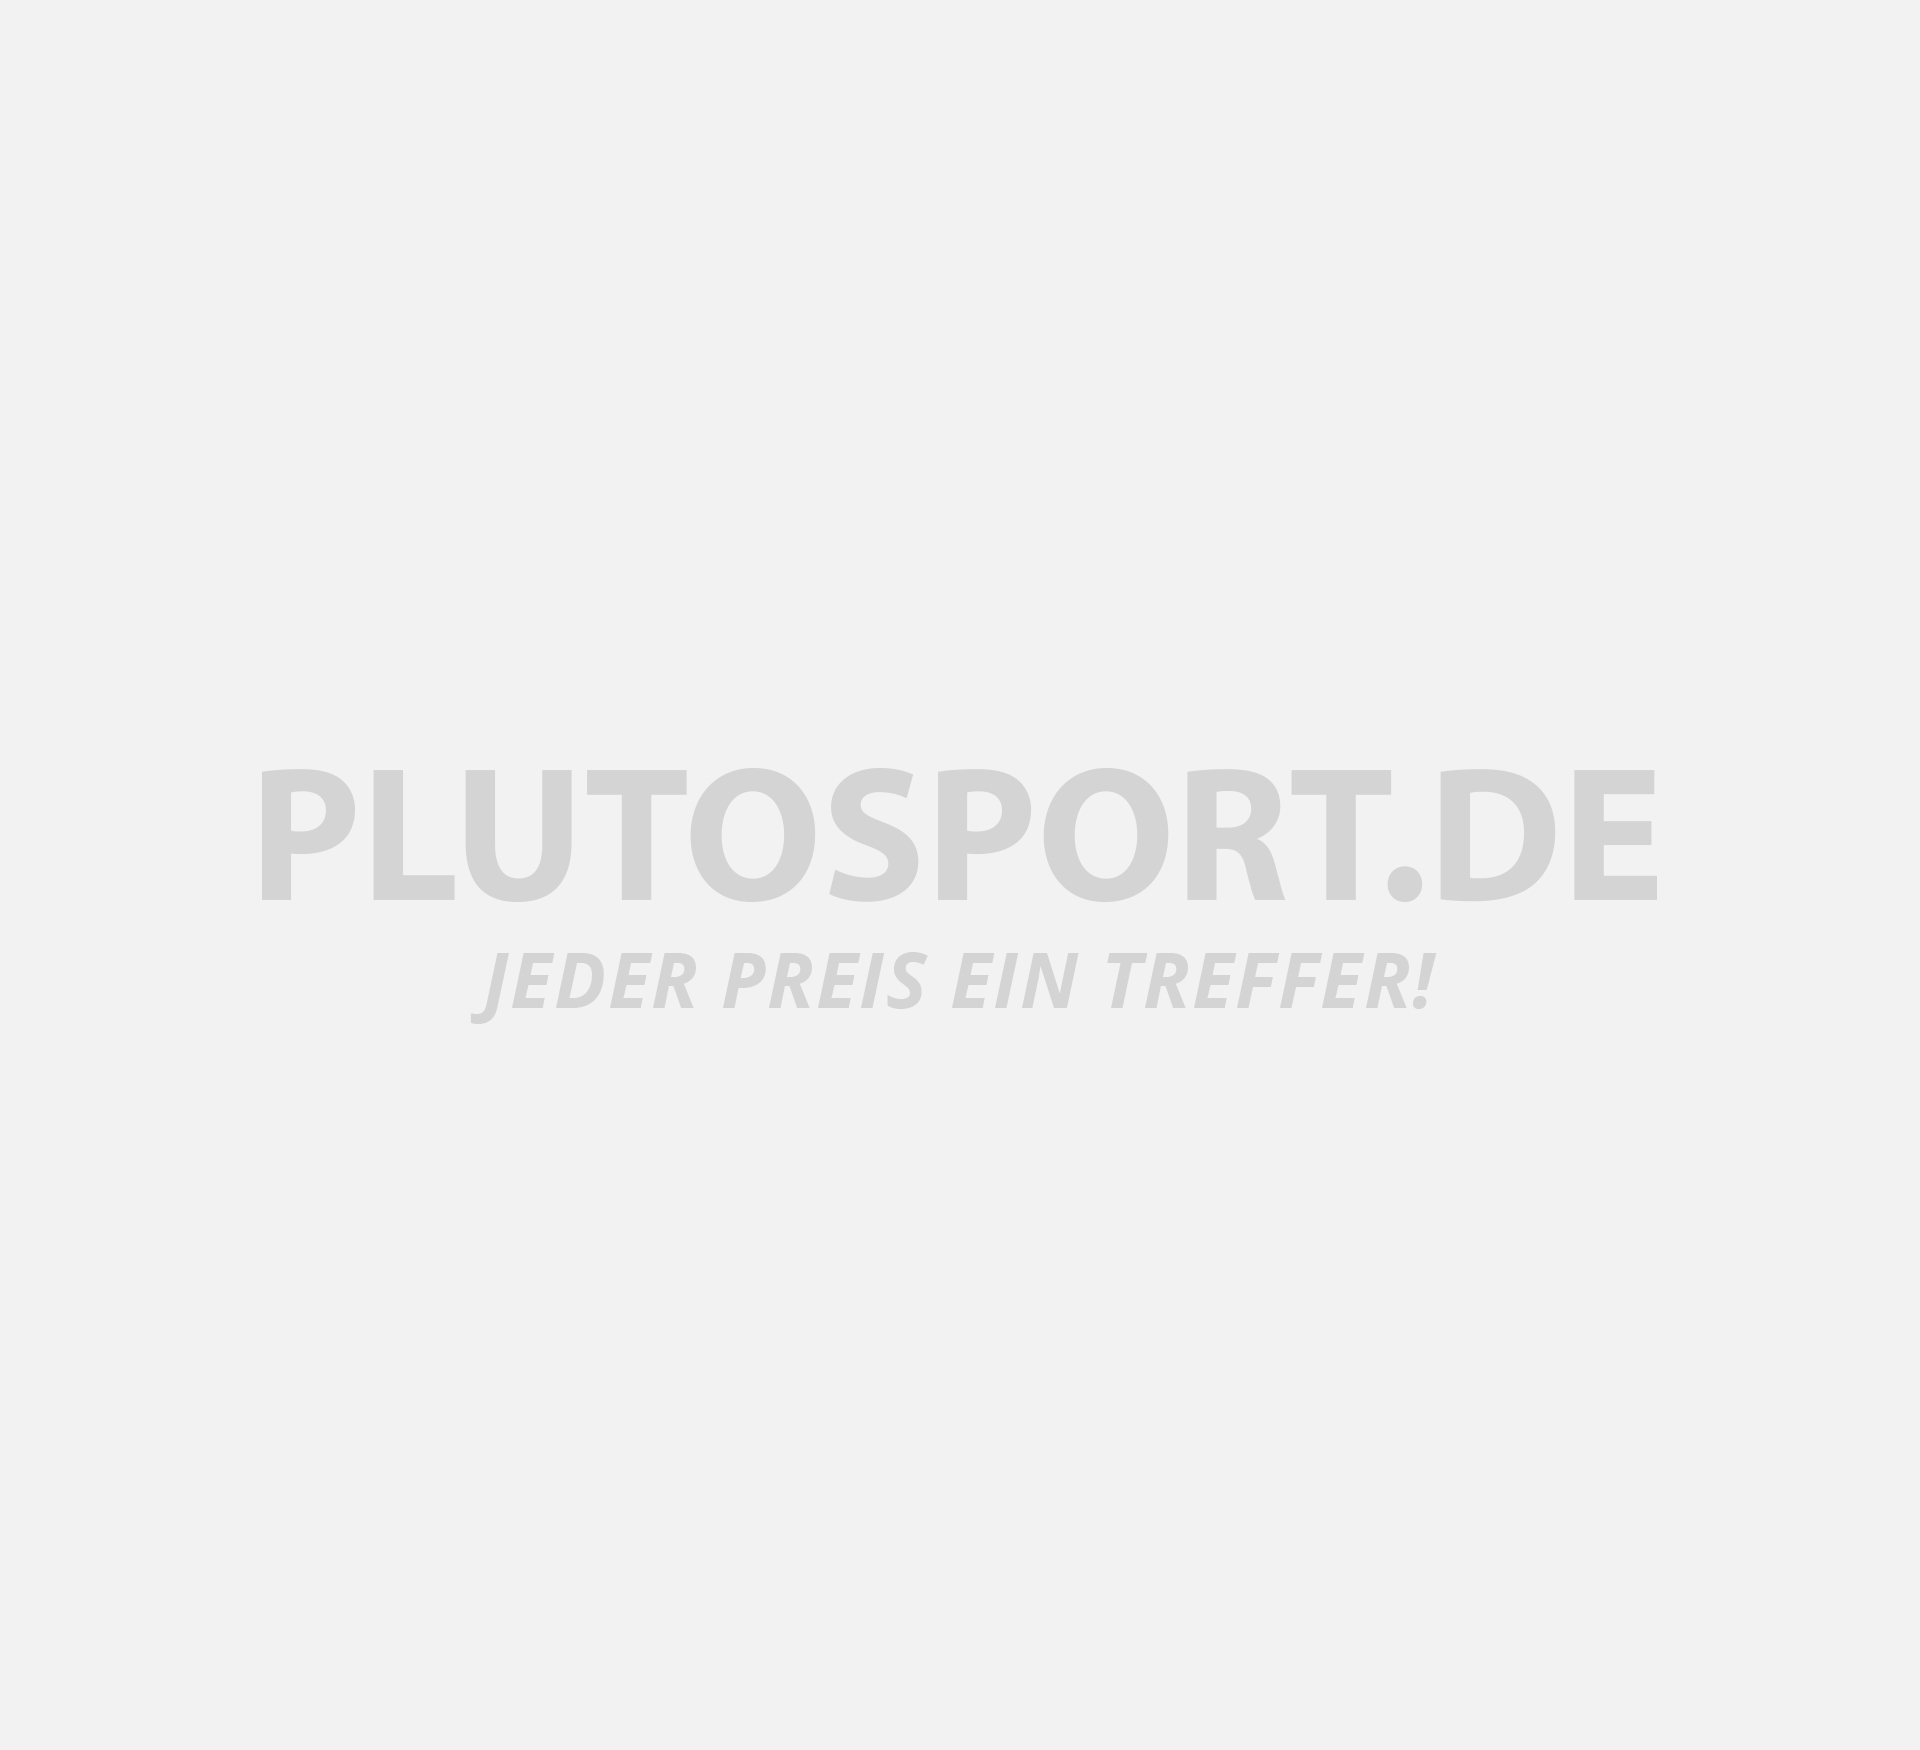 Sportec Coachmap Basketbal